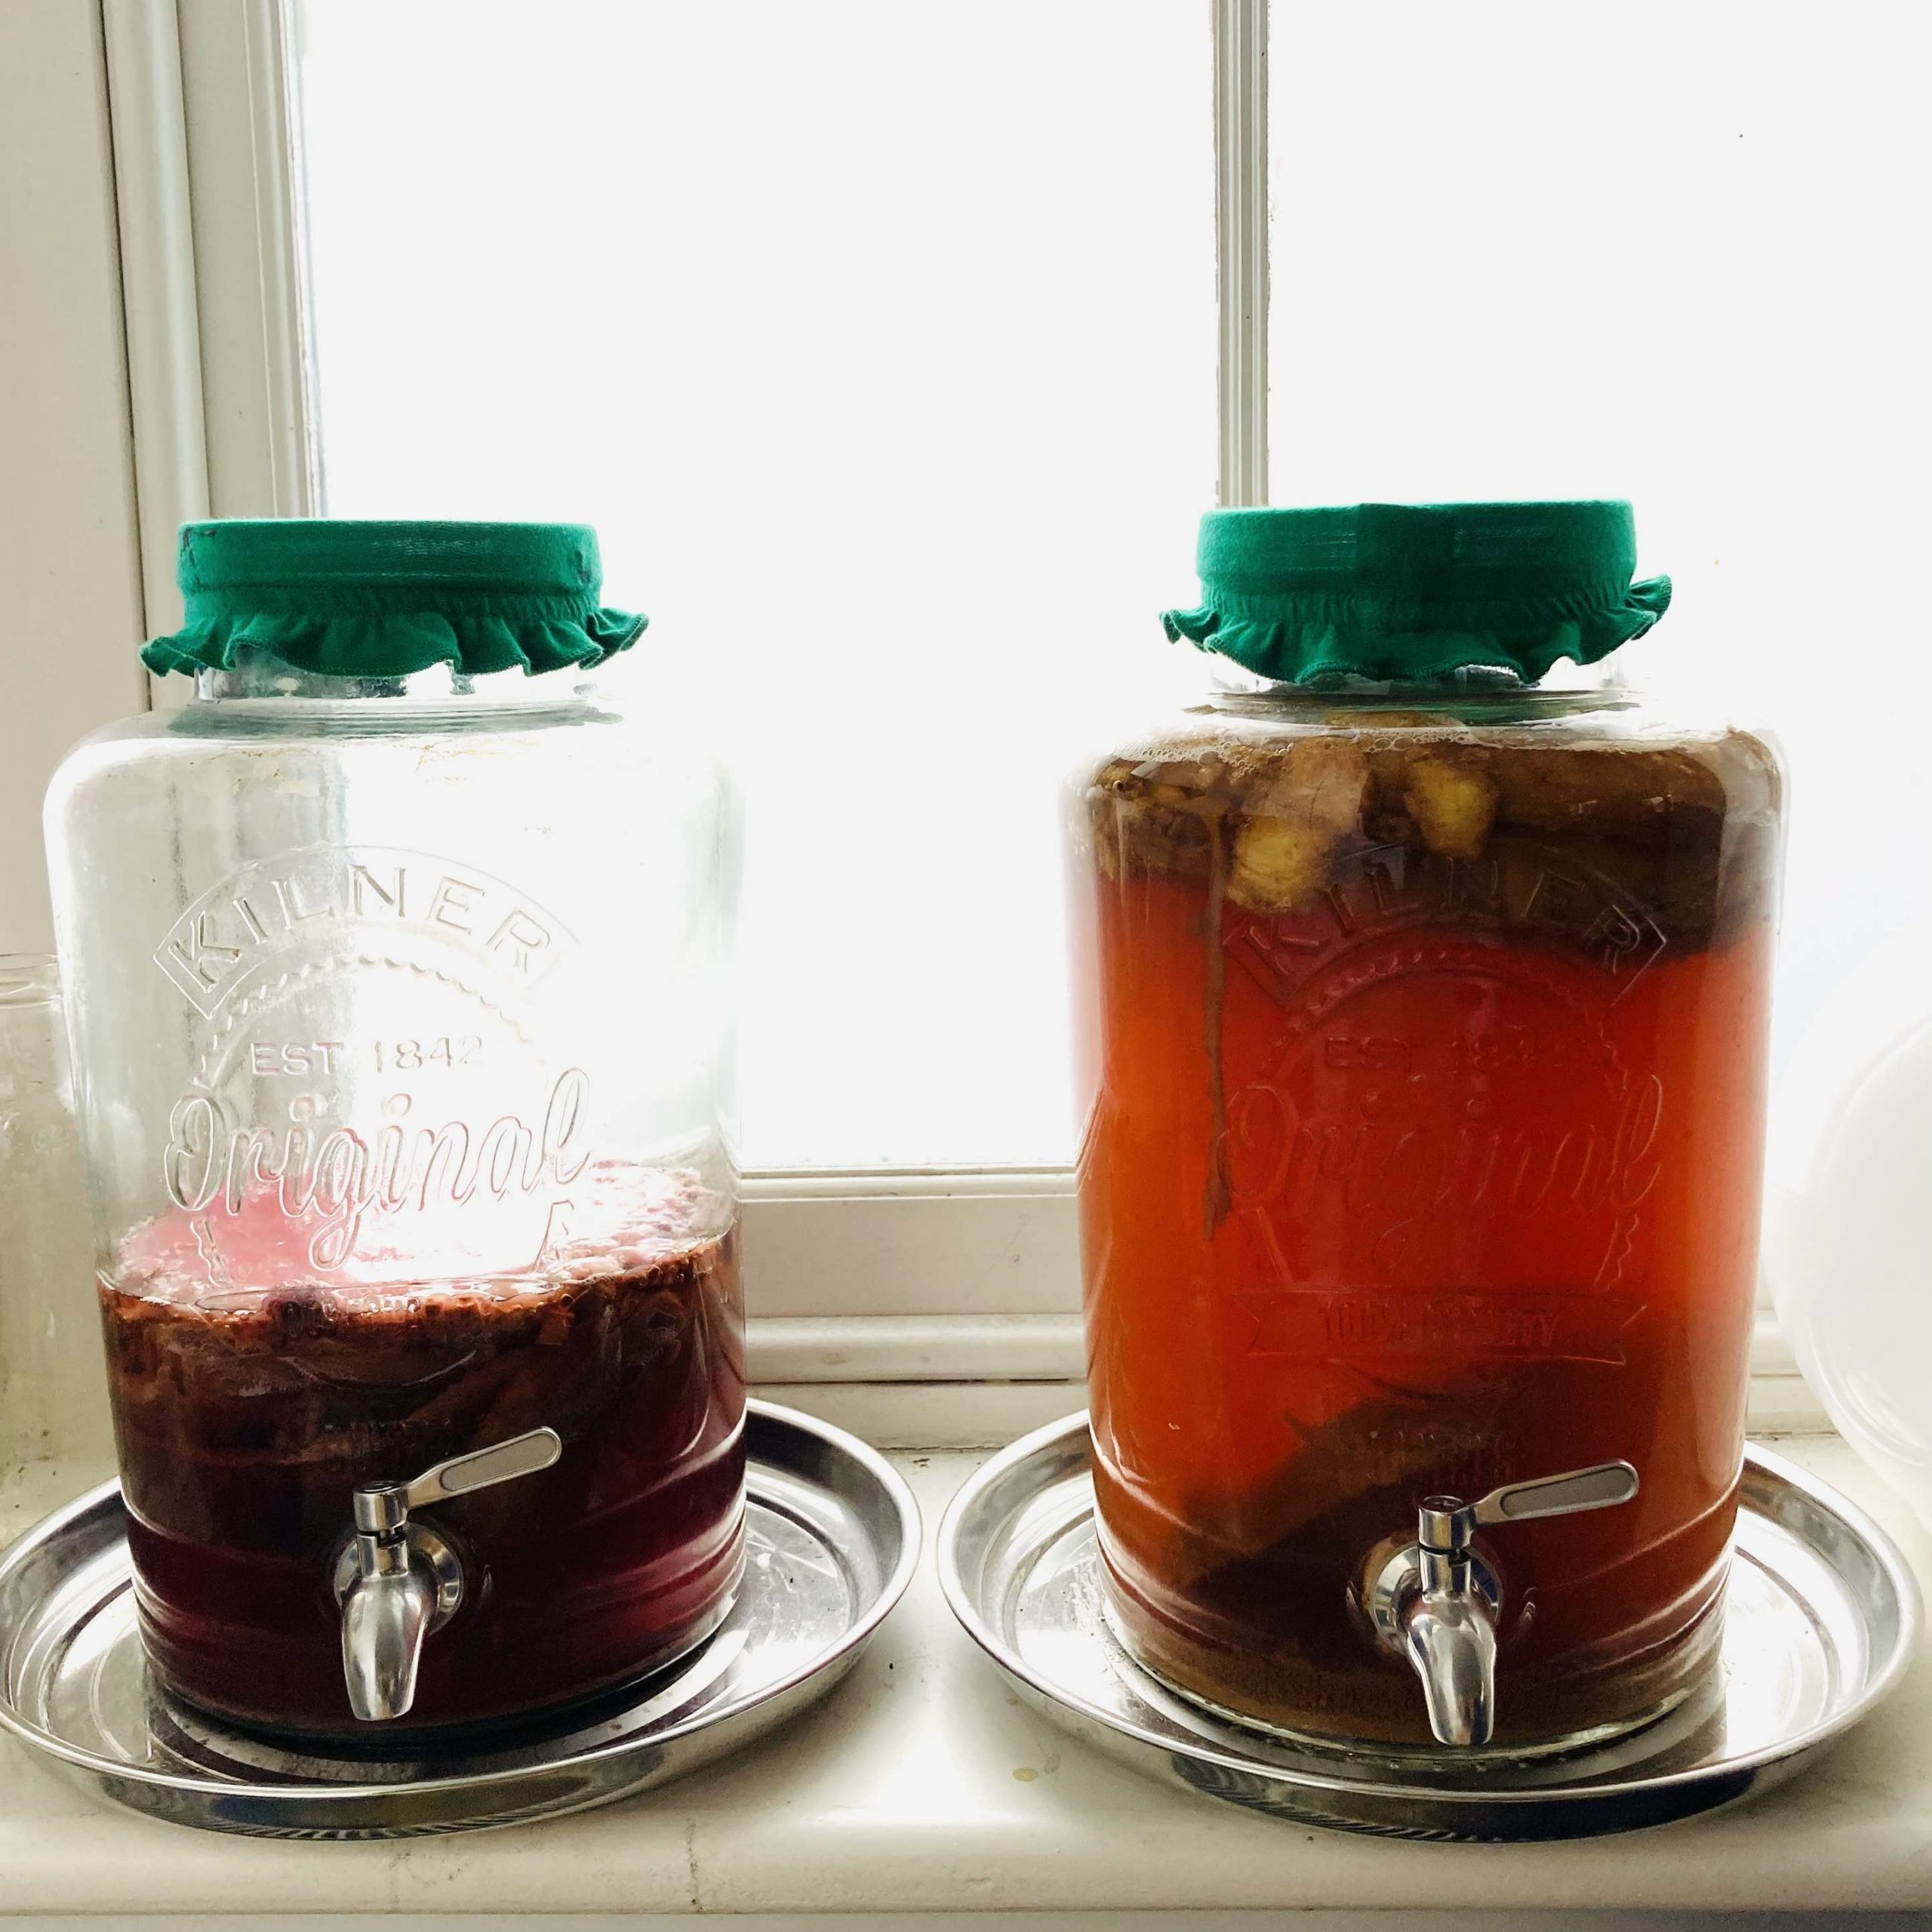 A photograph of two big 8 litre Kilner vats containing kombucha brews sitting on a window sill. Both vats are sitting on a steel plate and are wearing green fabric lid covers. The right hand vat is full to the brim and is a glowing amber colour. In the liquid, the scoby can be seen floating on top fermenting the tea, sugar and flavouring mix in the vat. The vat on the left is less than half full and the liquid has a purple tinge.